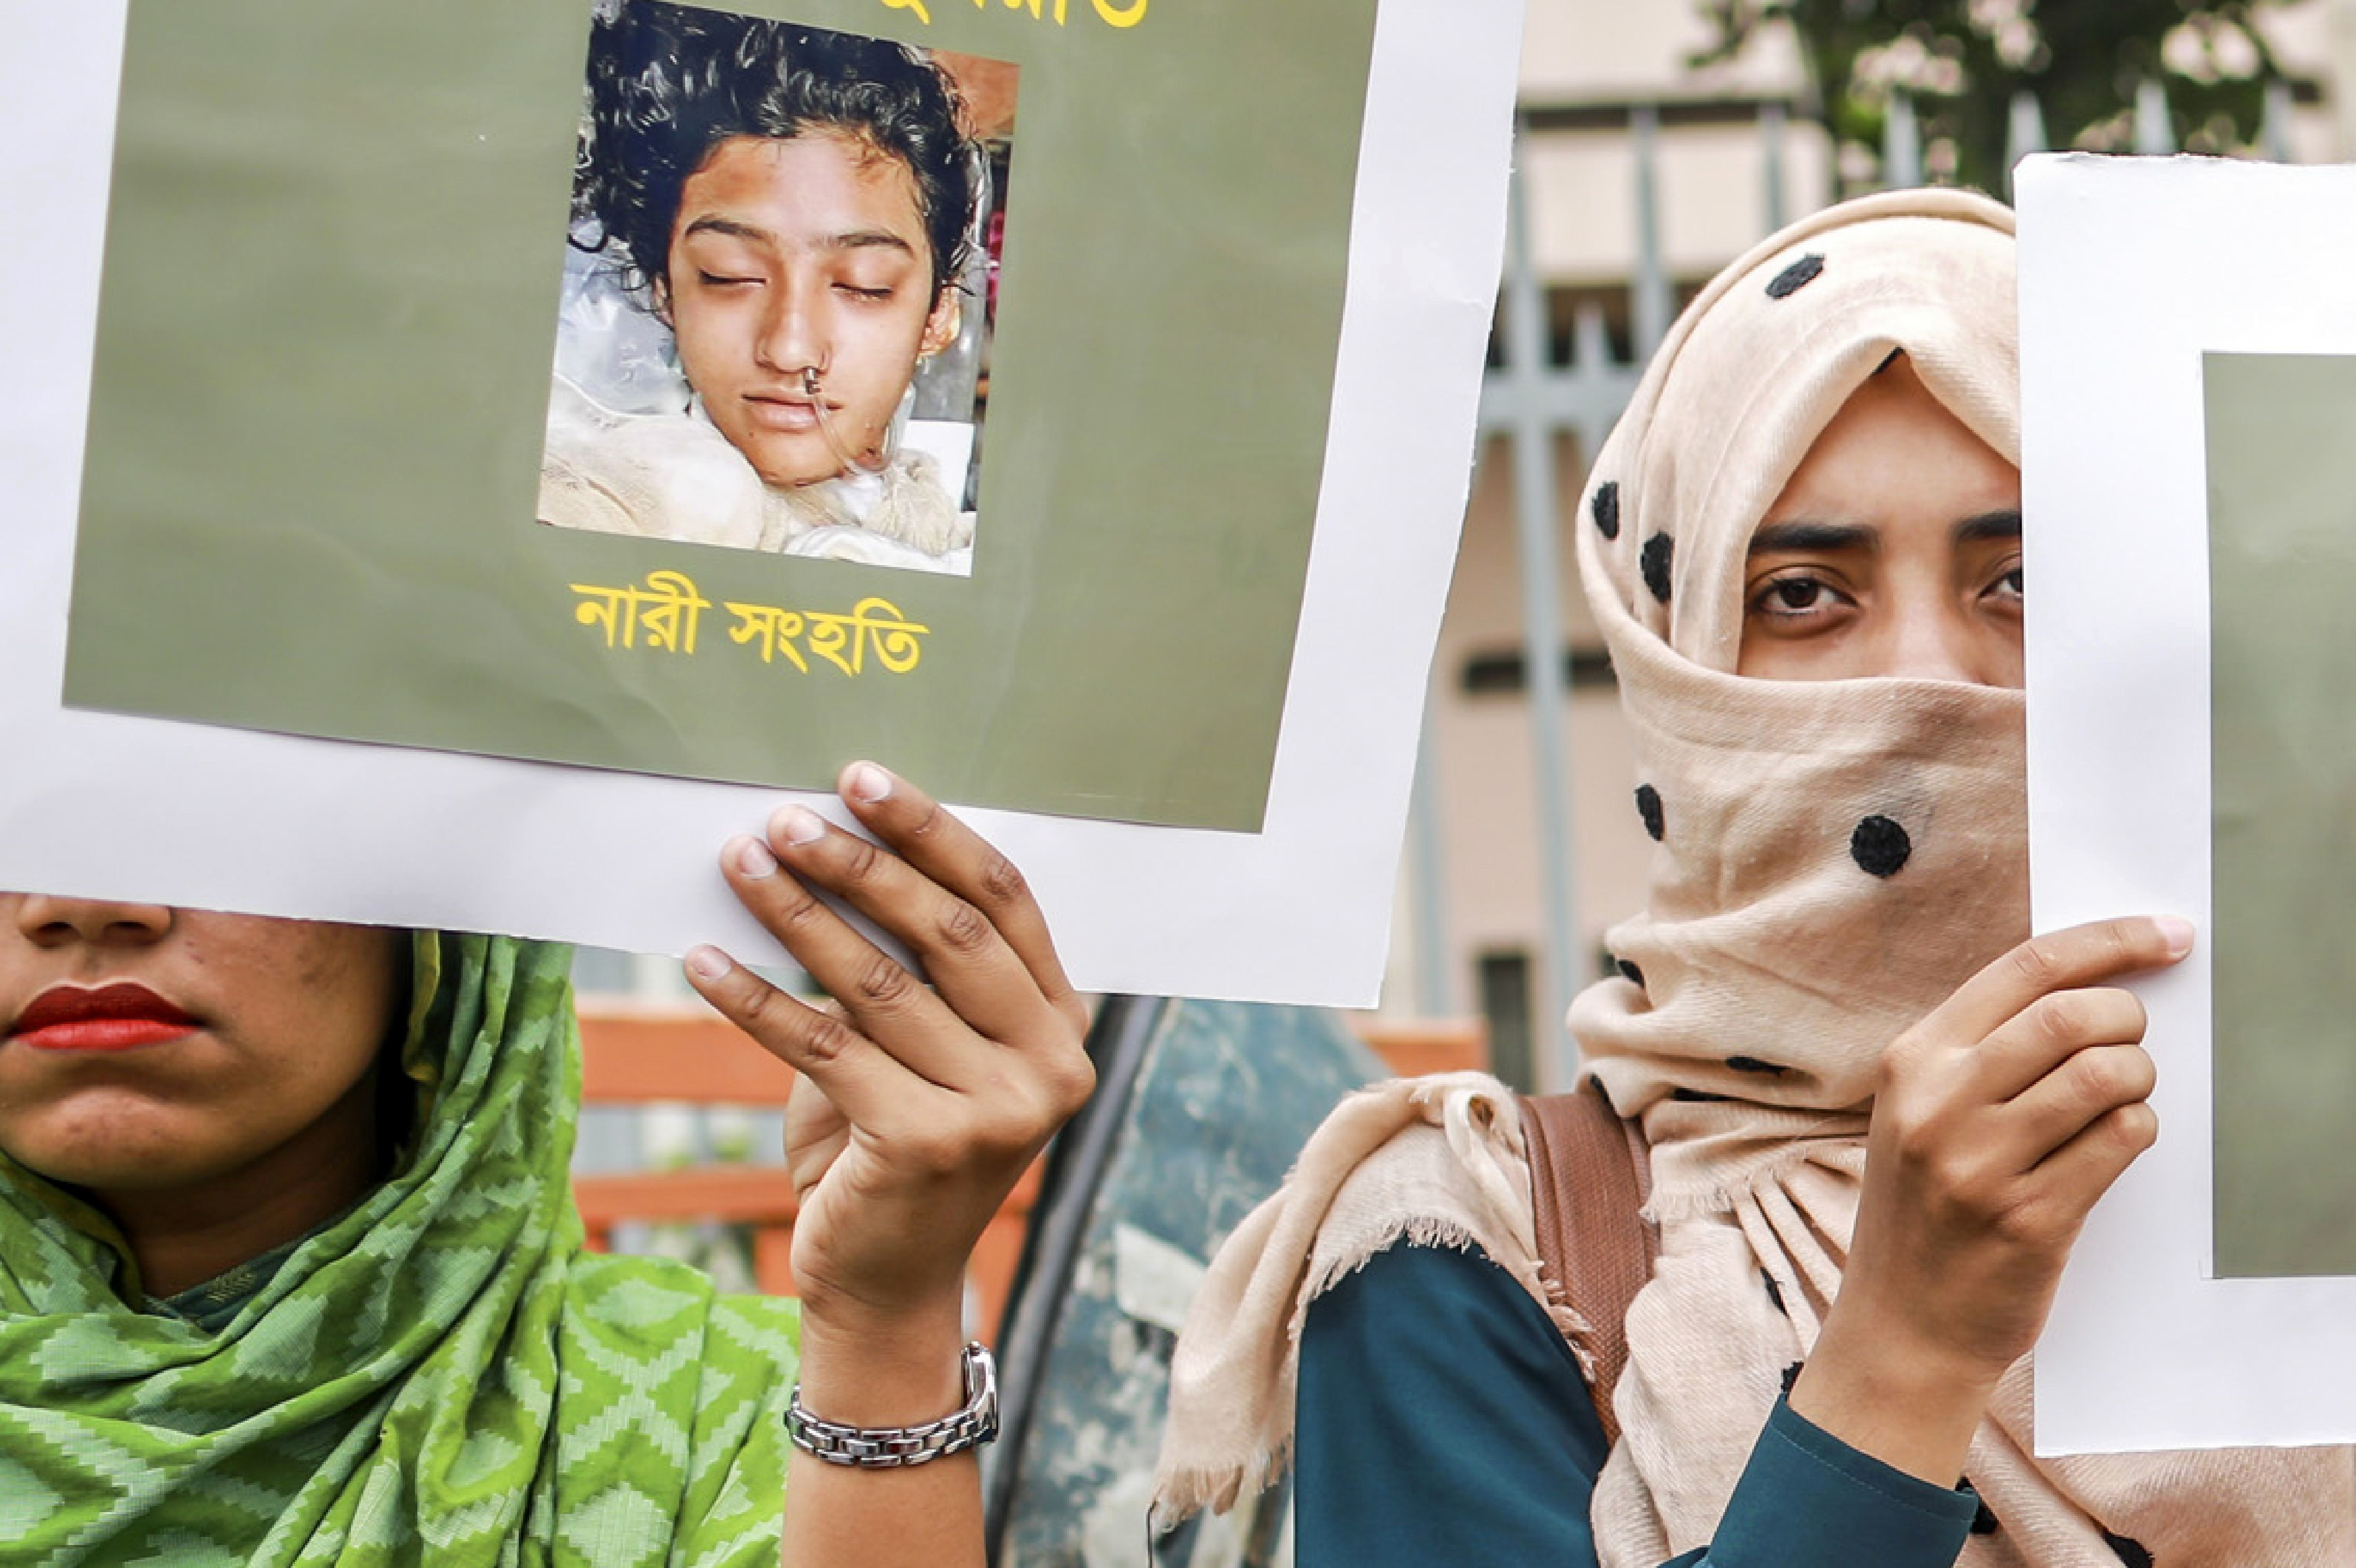 In this photo taken on April 12, 2019 Bangladeshi women hold placards and photographs of schoolgirl Nusrat Jahan Rafi at a protest in Dhaka, following her murder by being set on fire after she had reported a sexual assault. - A schoolgirl was burned to death in Bangladesh on the orders of her head teacher after she reported him for sexually harassing her, police said April 19. The death of 19-year-old Nusrat Jahan Rafi last week sparked protests across the South Asian nation, with the prime minister promising to prosecute all those involved. (Photo by SAZZAD HOSSAIN / AFP)        (Photo credit should read SAZZAD HOSSAIN/AFP/Getty Images)